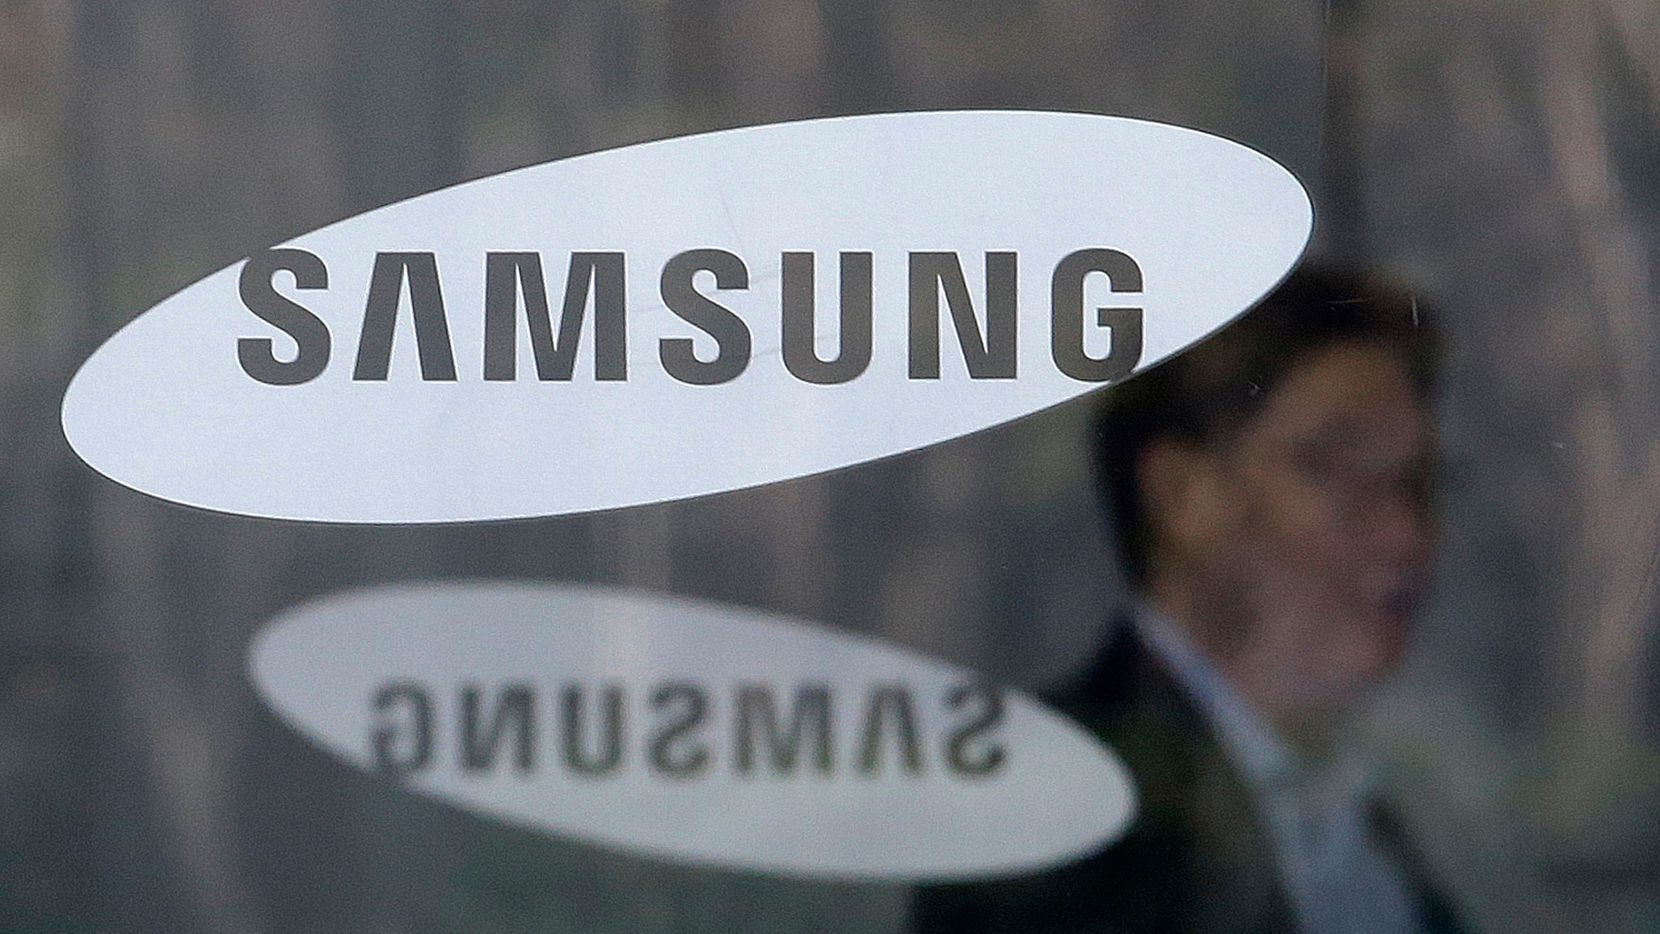 FILE - In this April 6, 2018 file photo, An employee walks past logos of the Samsung Electronics Co. at its office in Seoul, South Korea. Samsung Electronics said Thursday, April 26, 2018 its first-quarter earnings jumped 52 percent over a year earlier thanks to its mainstay memory chips that posted another record-high quarterly profit. (AP Photo/Ahn Young-joon, File)